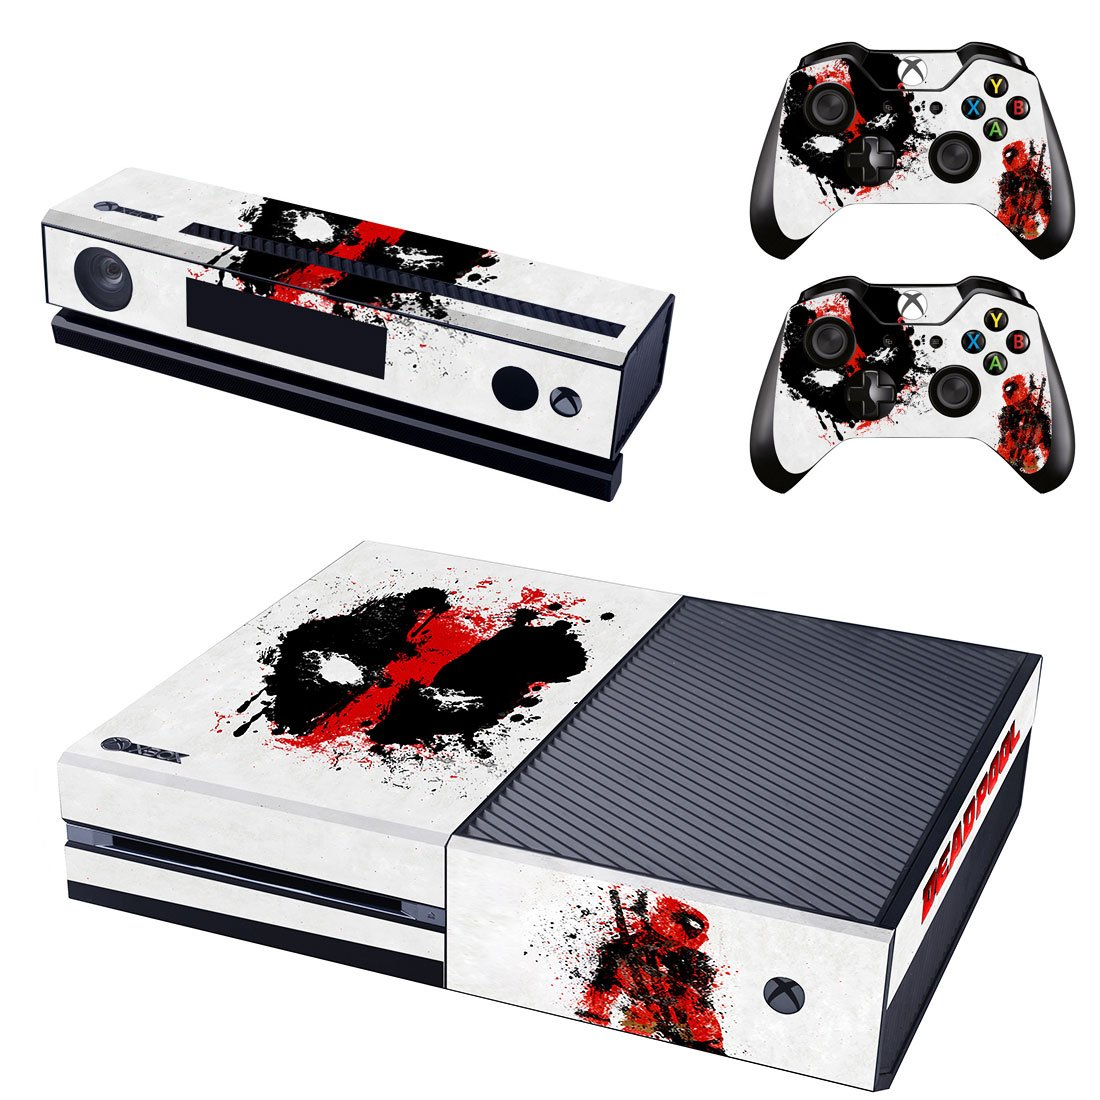 Deadpool Wallpapers design skin for Xbox one decal sticker console